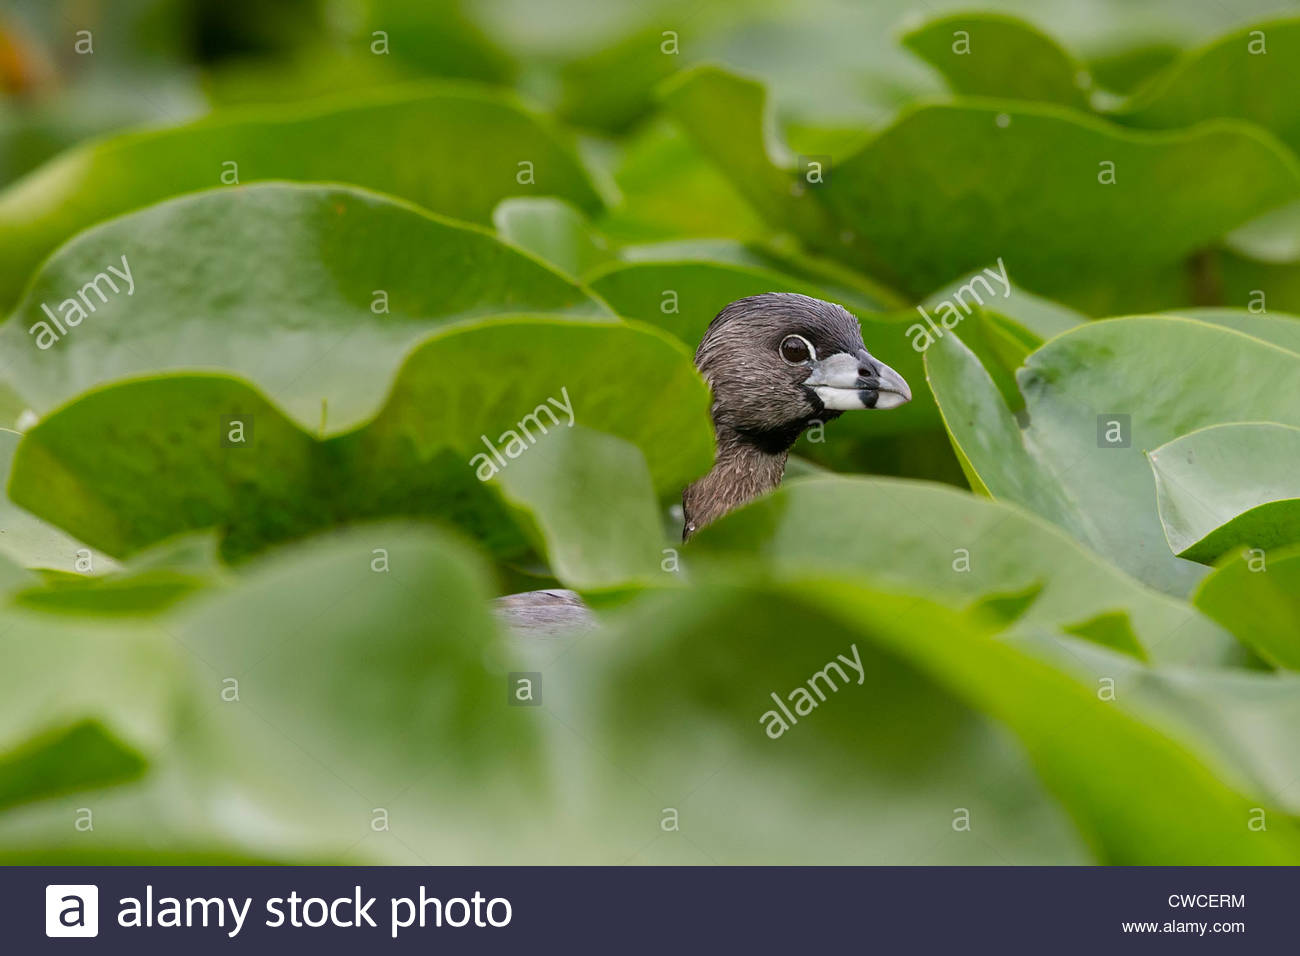 A Pied-Billed Grebe (Podilymbus podiceps) hides among the lily pads in the wetlands of the Seattle Arboretum. - Stock Image